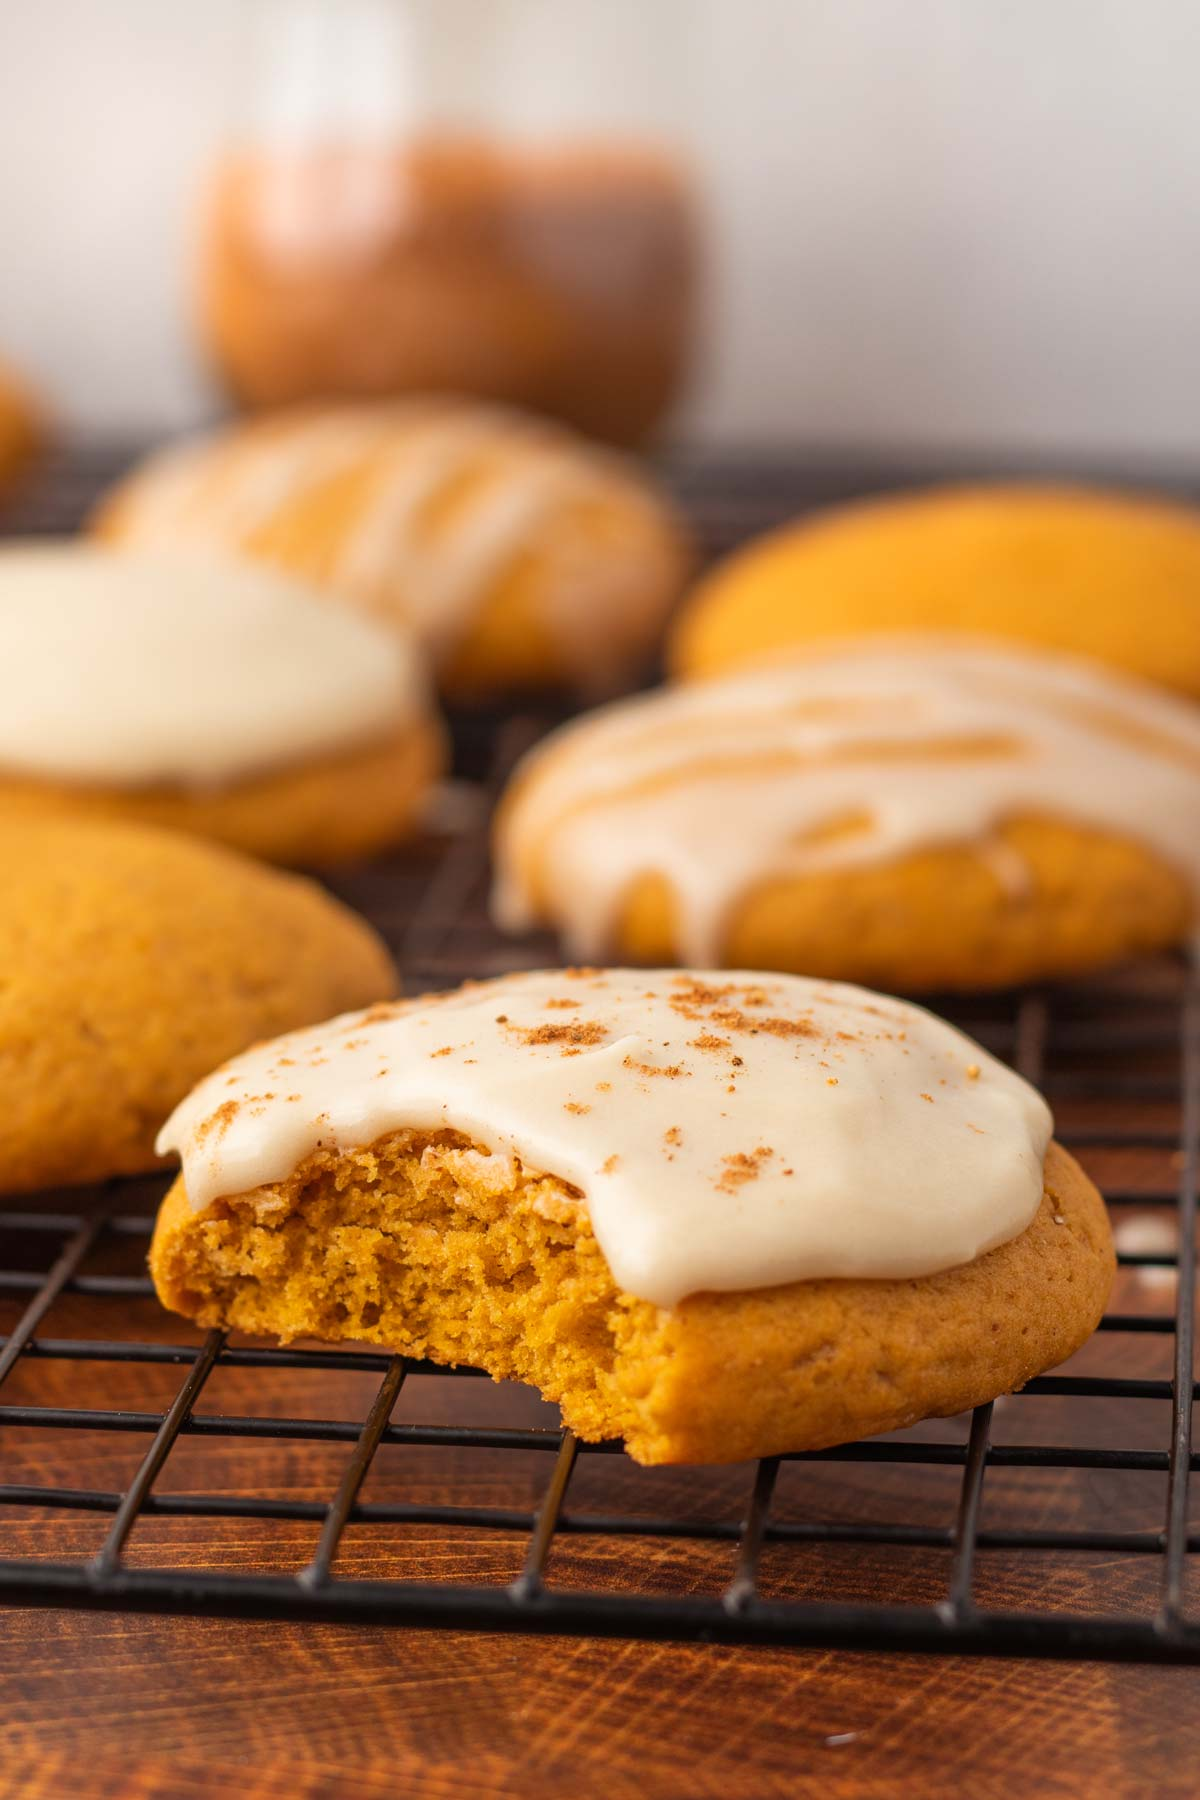 Vegan pumpkin cookies on a cookie rack. The cookie in front is frosted with dairy-free cream cheese frosting and has a bite taken out.